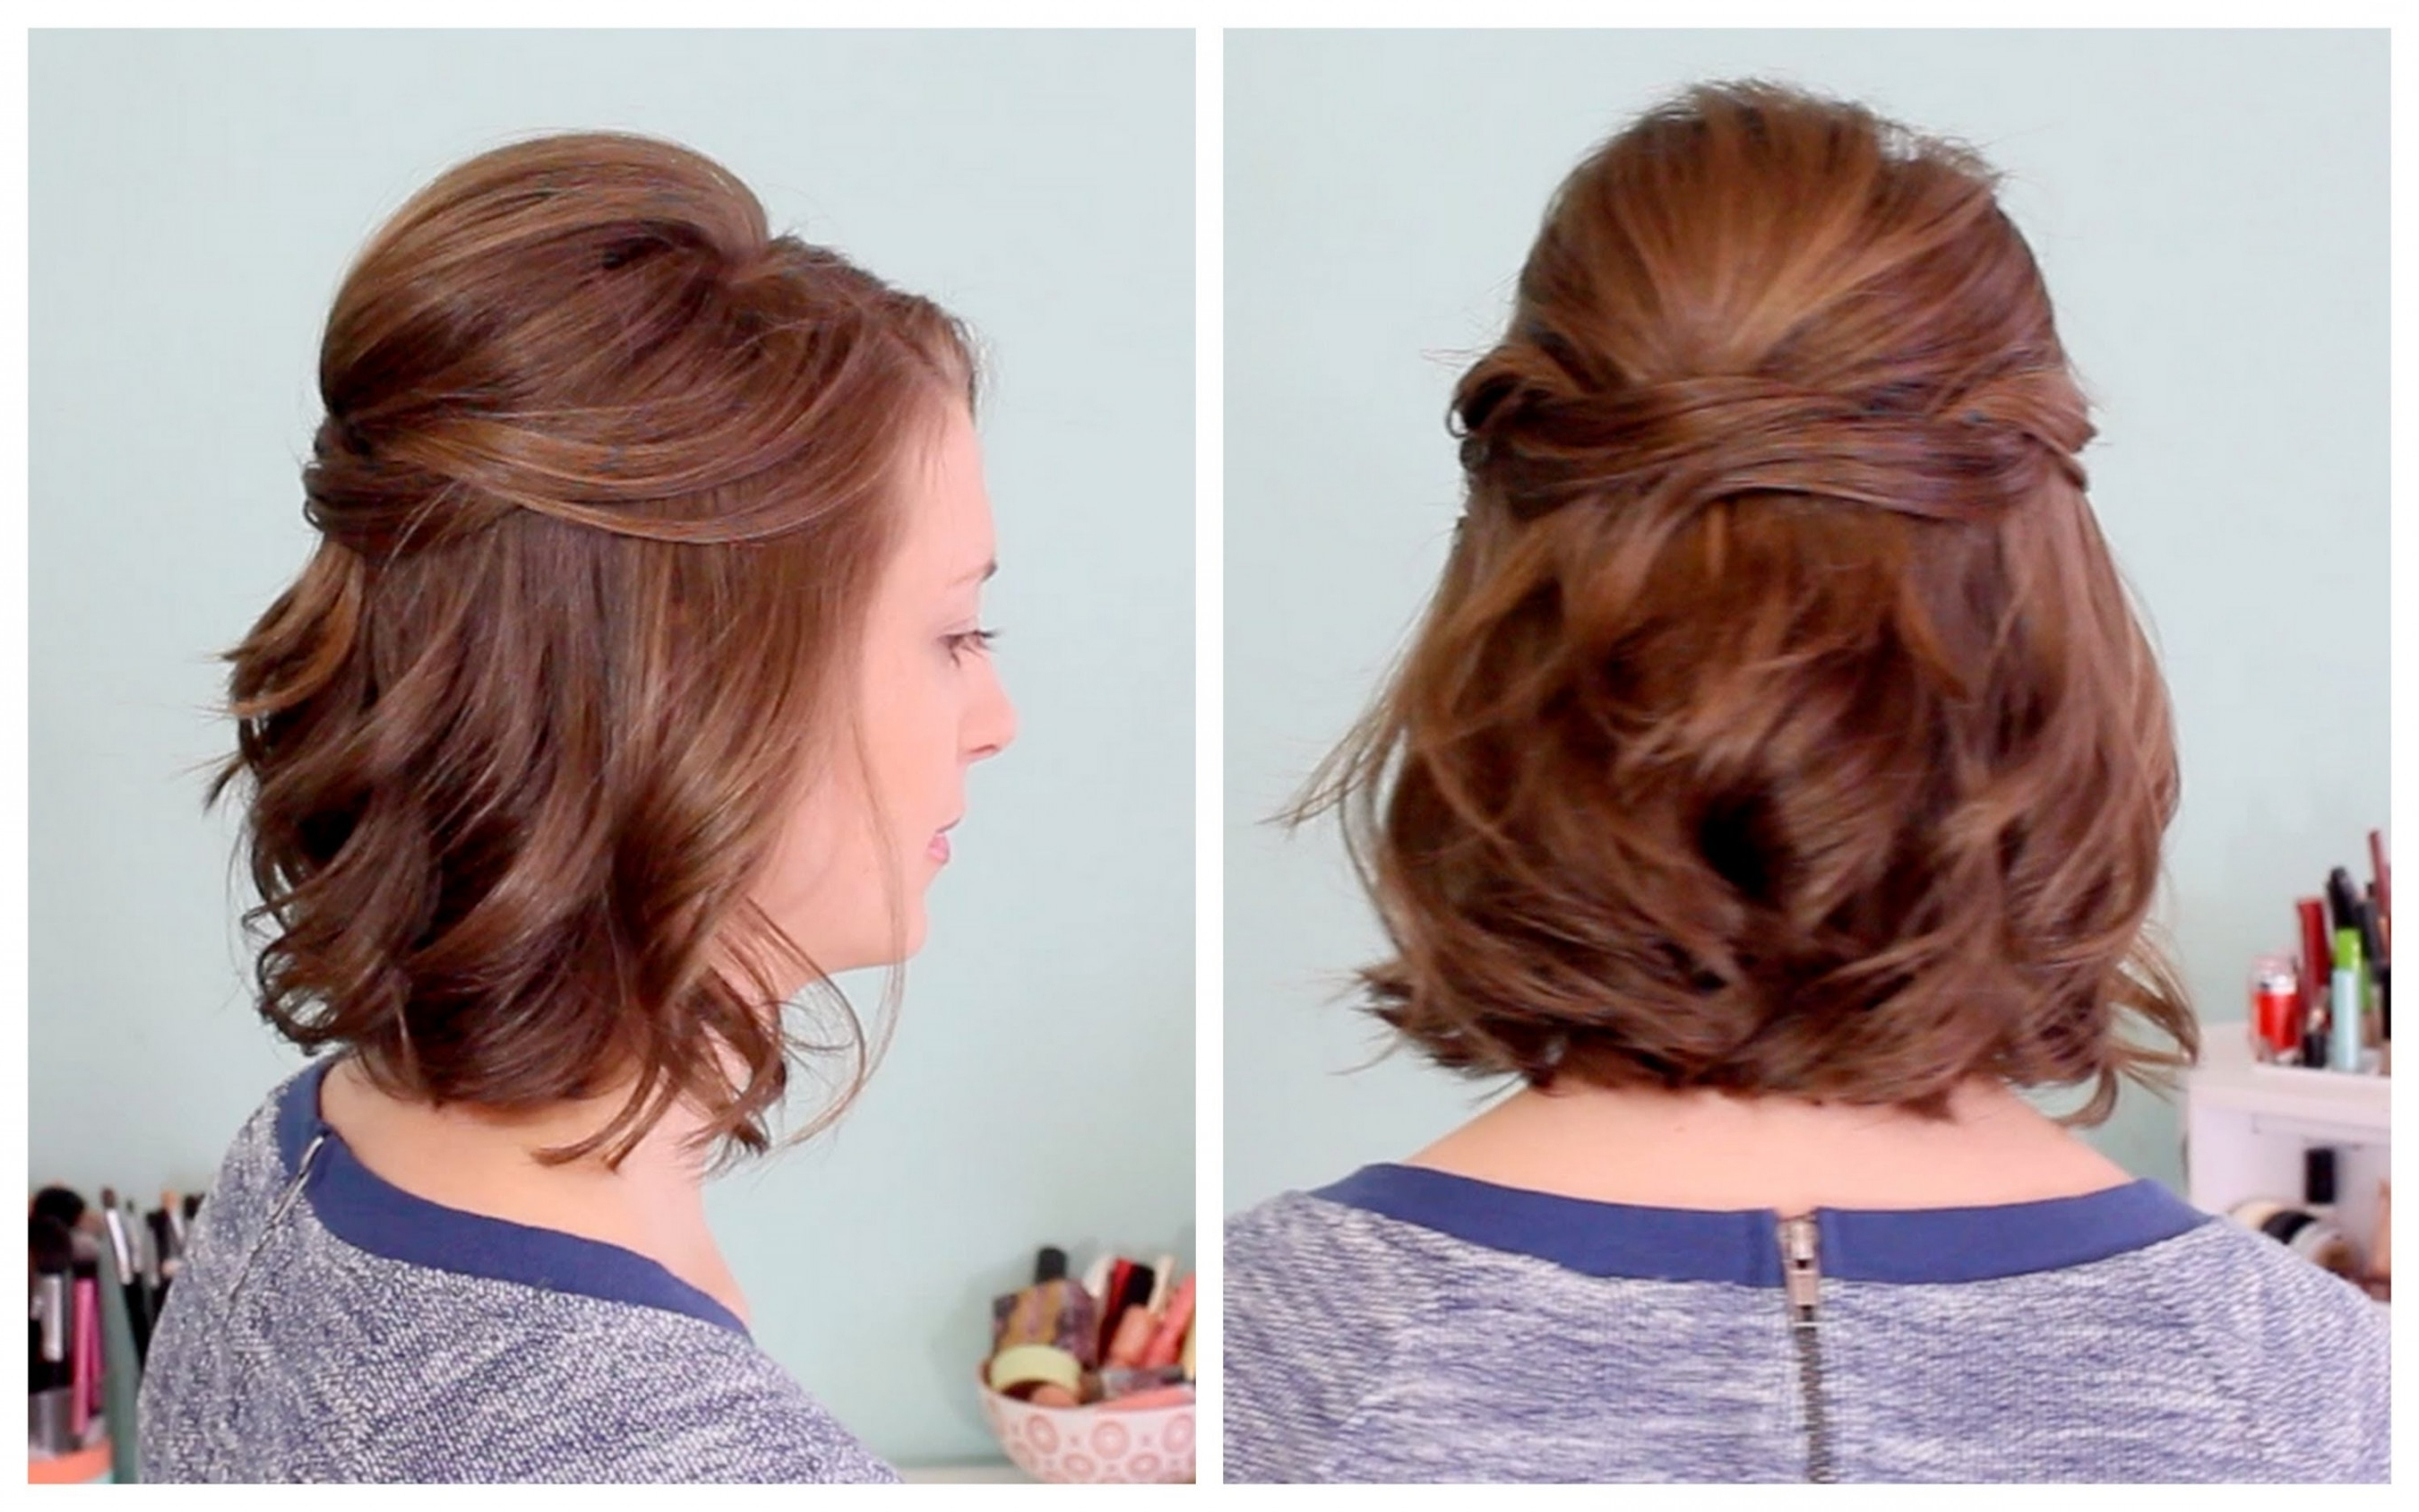 Curly Half Updo Medium Length Hairstyles Quick Half Up Hairstyle Regarding Half Updo Hairstyles For Medium Length Hair (View 3 of 15)